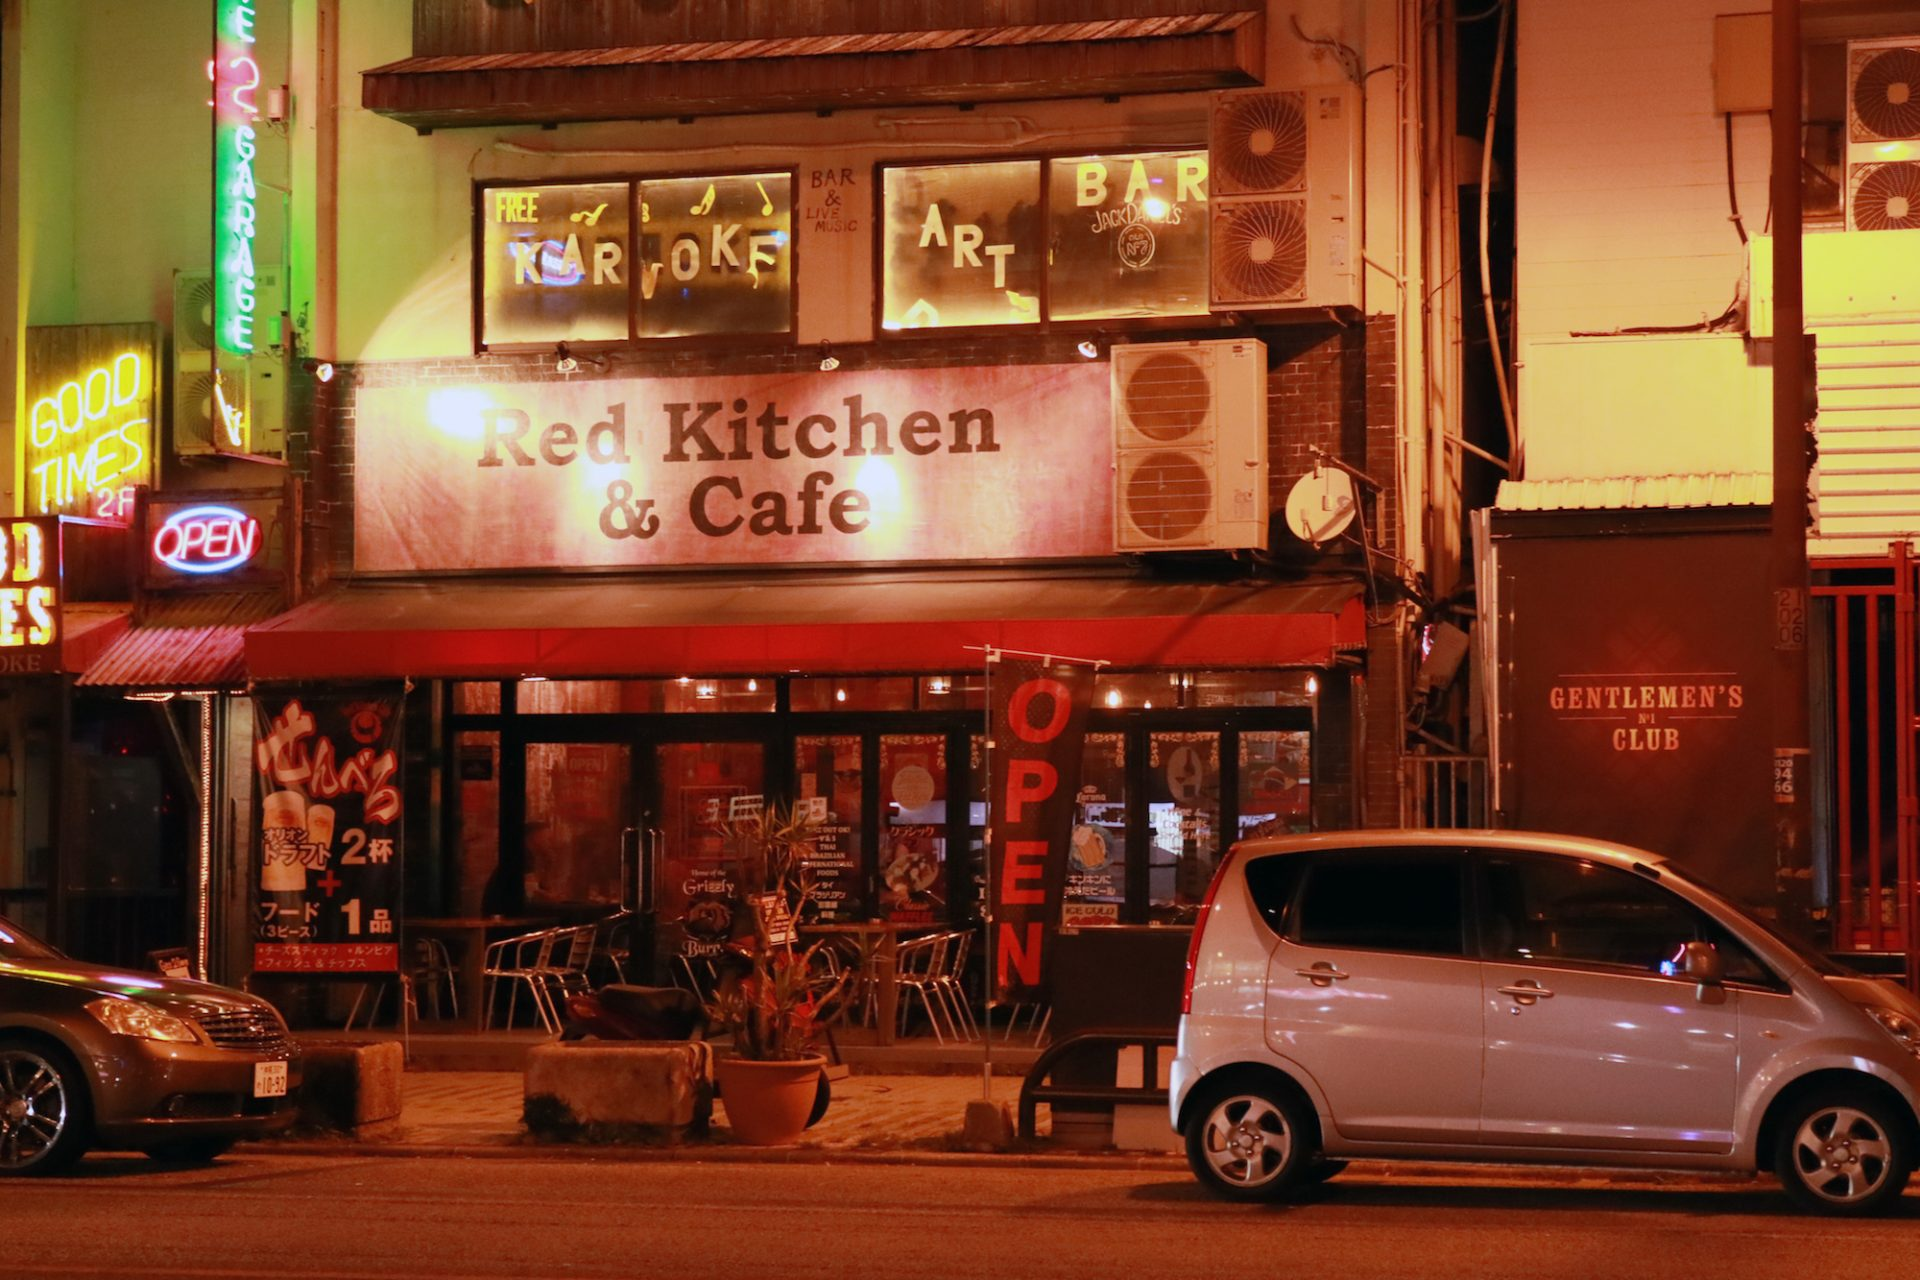 1.Red Kitchin & Cafe(レッド キッチン&カフェ)